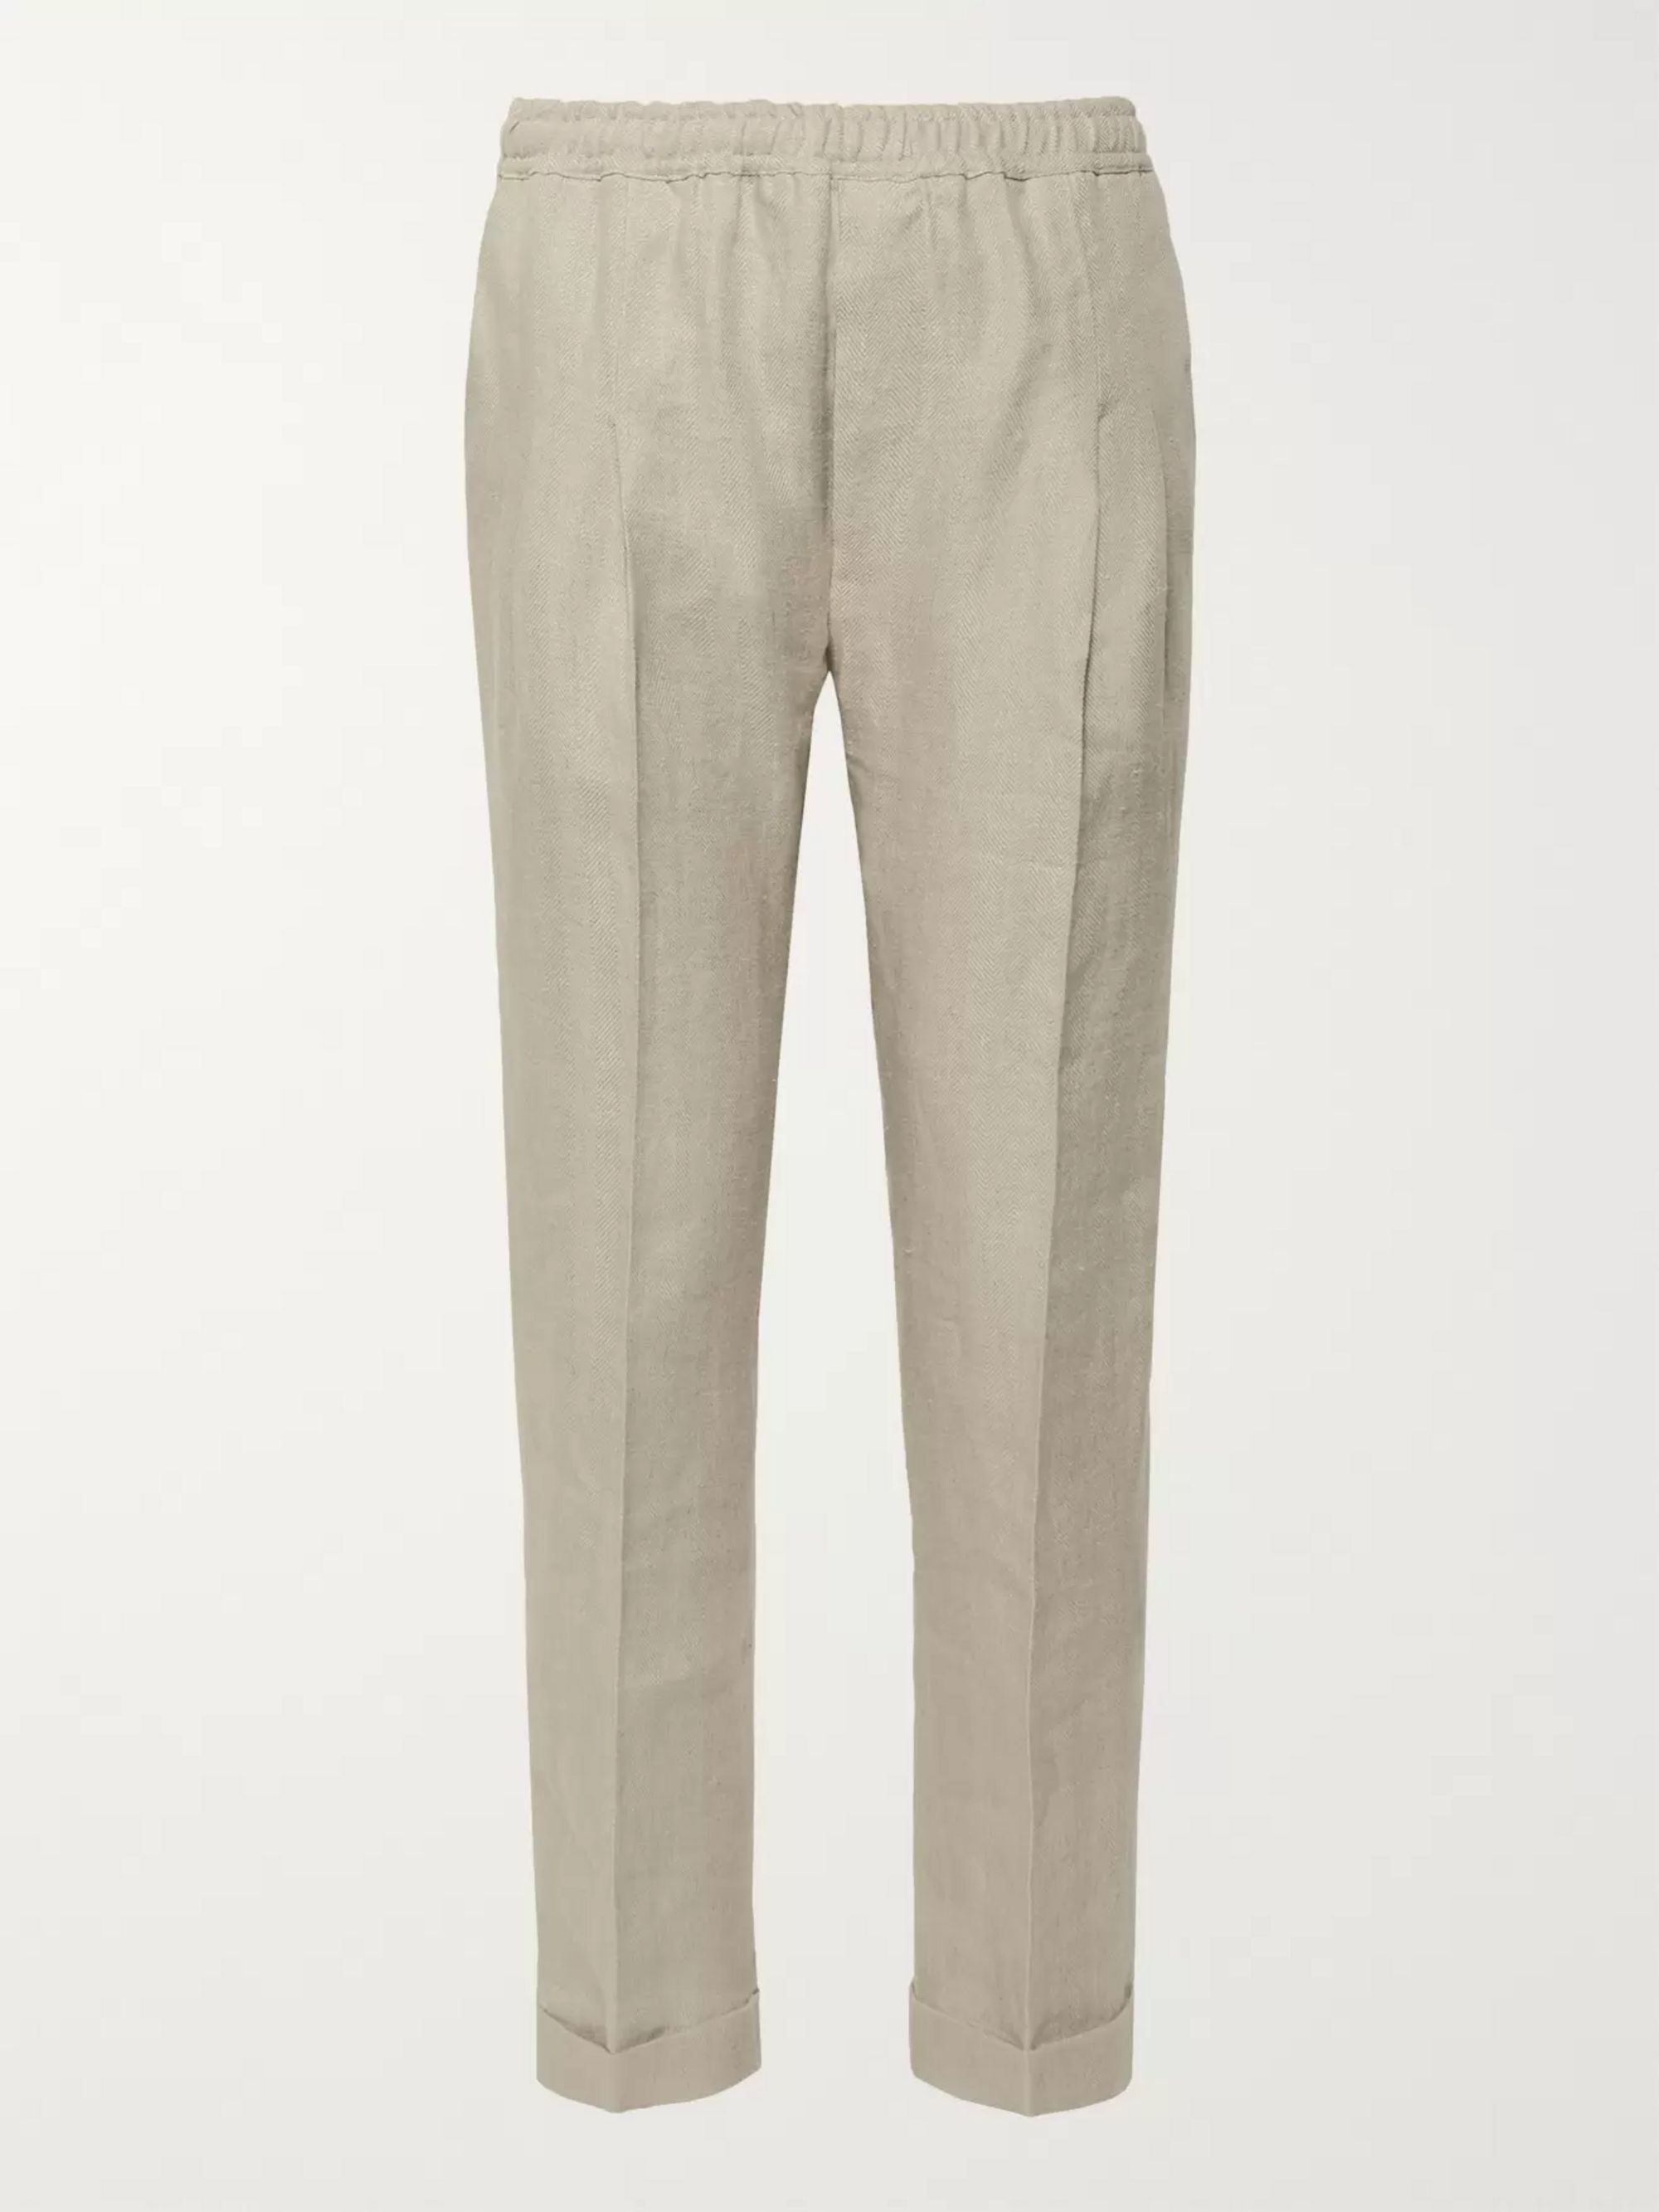 Rubinacci Tapered Pleated Herringbone Linen Drawstring Trousers